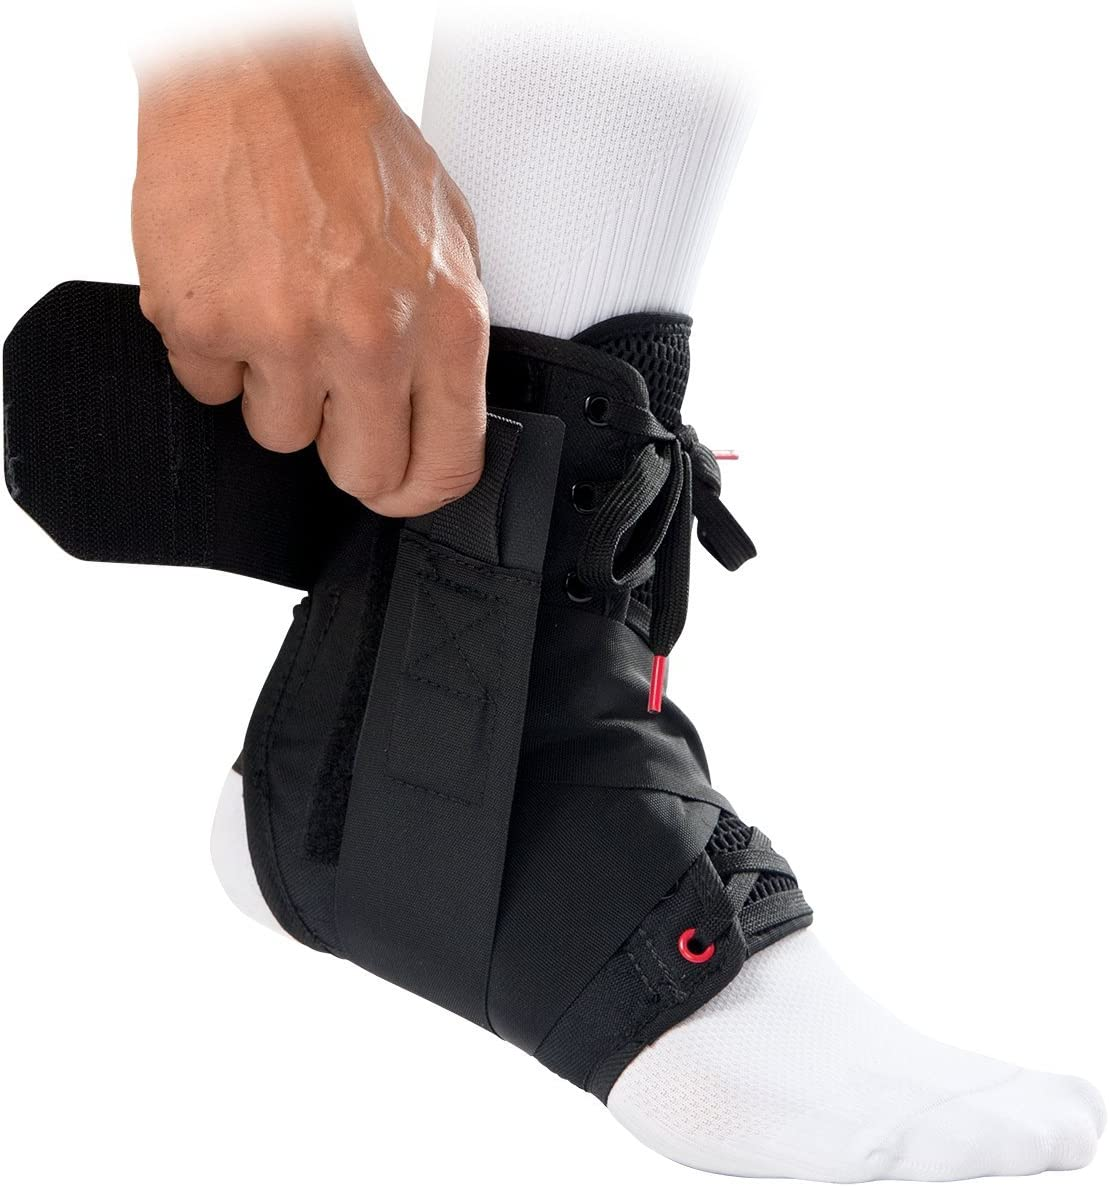 Mcdavid Ankle Brace, Ankle Support, Ankle Support Brace for Ankle Sprains, Volleyball, Basketball for Men & Women, Sold as Single Unit (1) : Sports & Outdoors